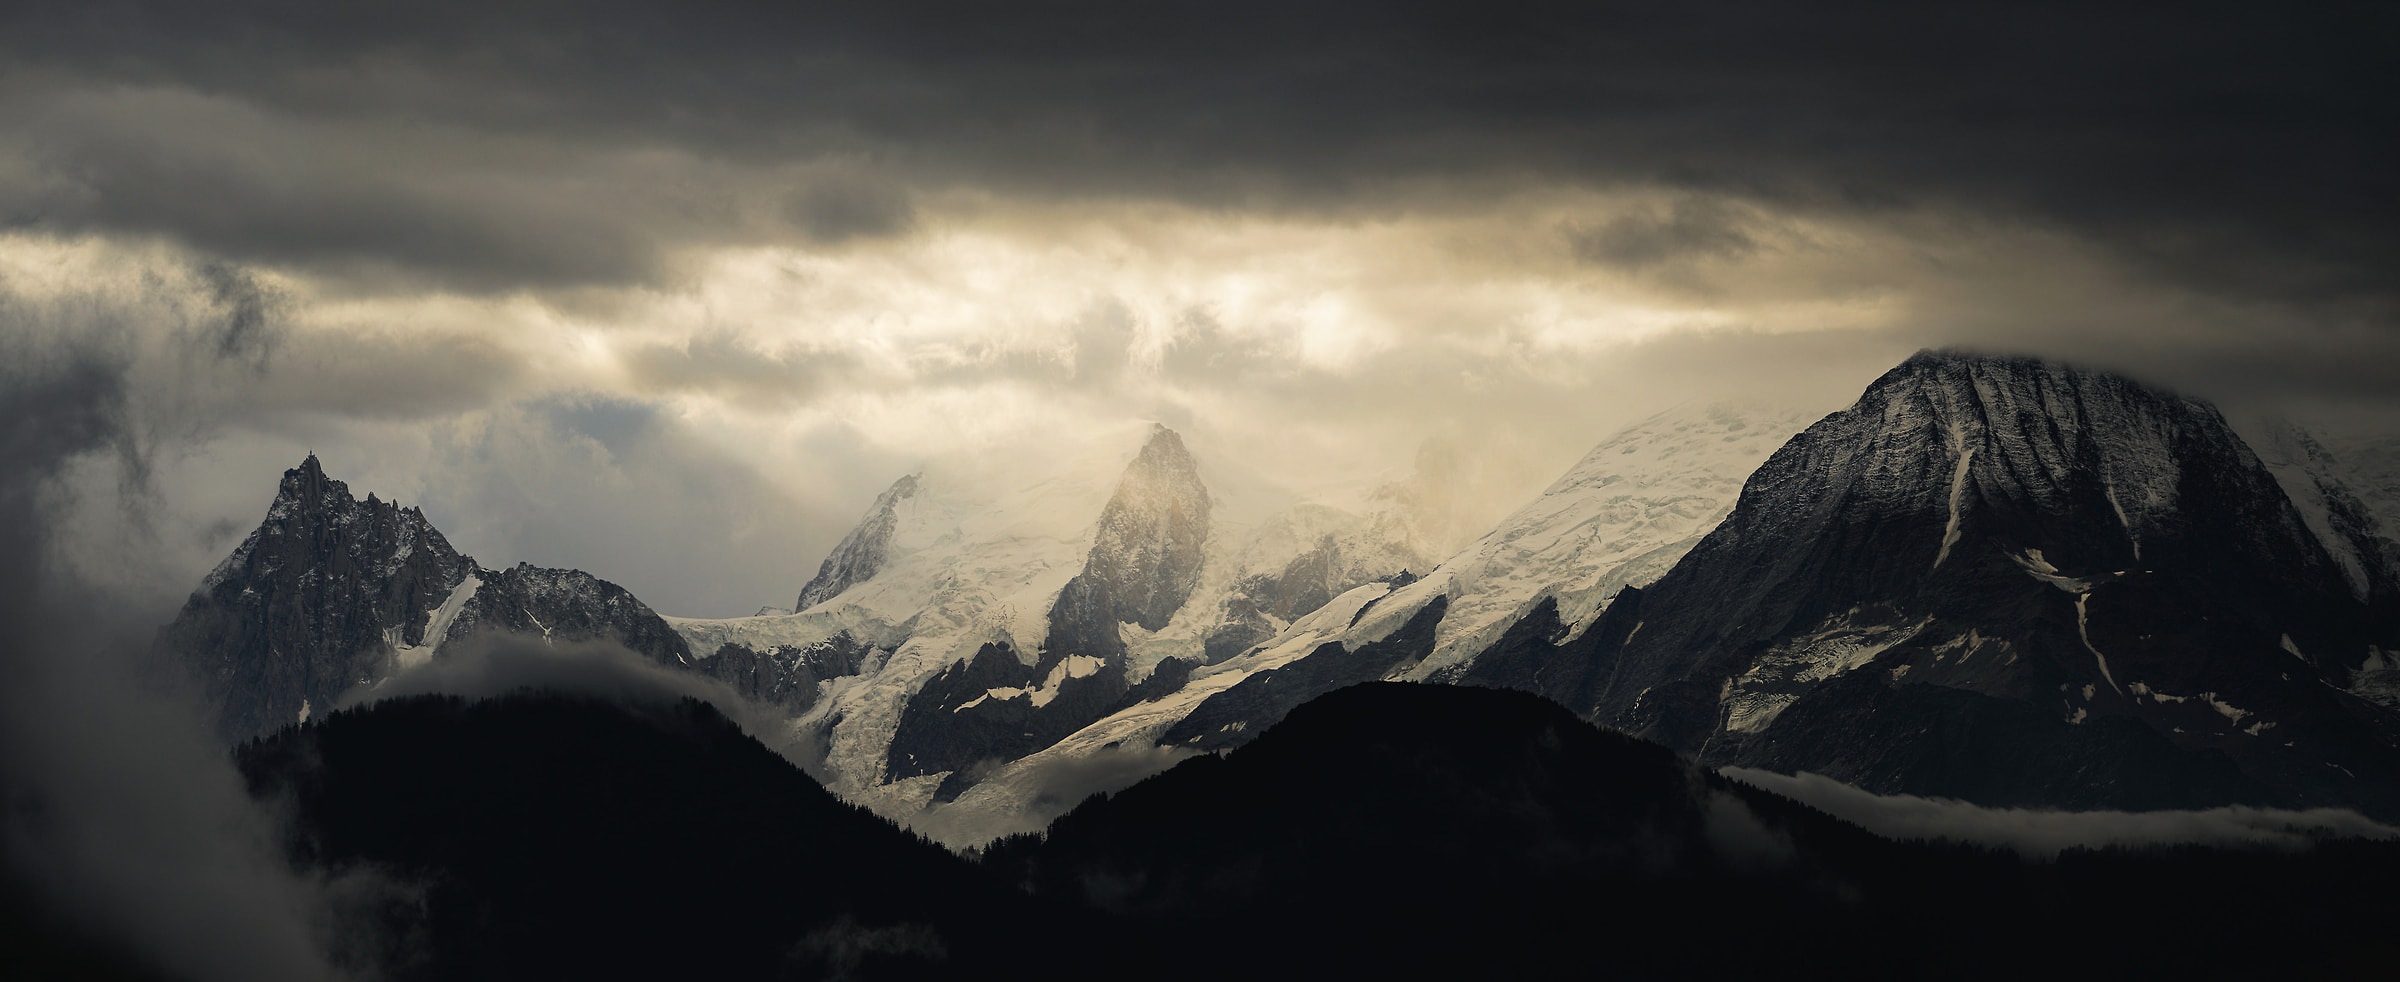 166 megapixels! A very high resolution, large-format VAST photo print of a mountain scene with a moody atmosphere; landscape photograph created by Alexandre Deschaumes.